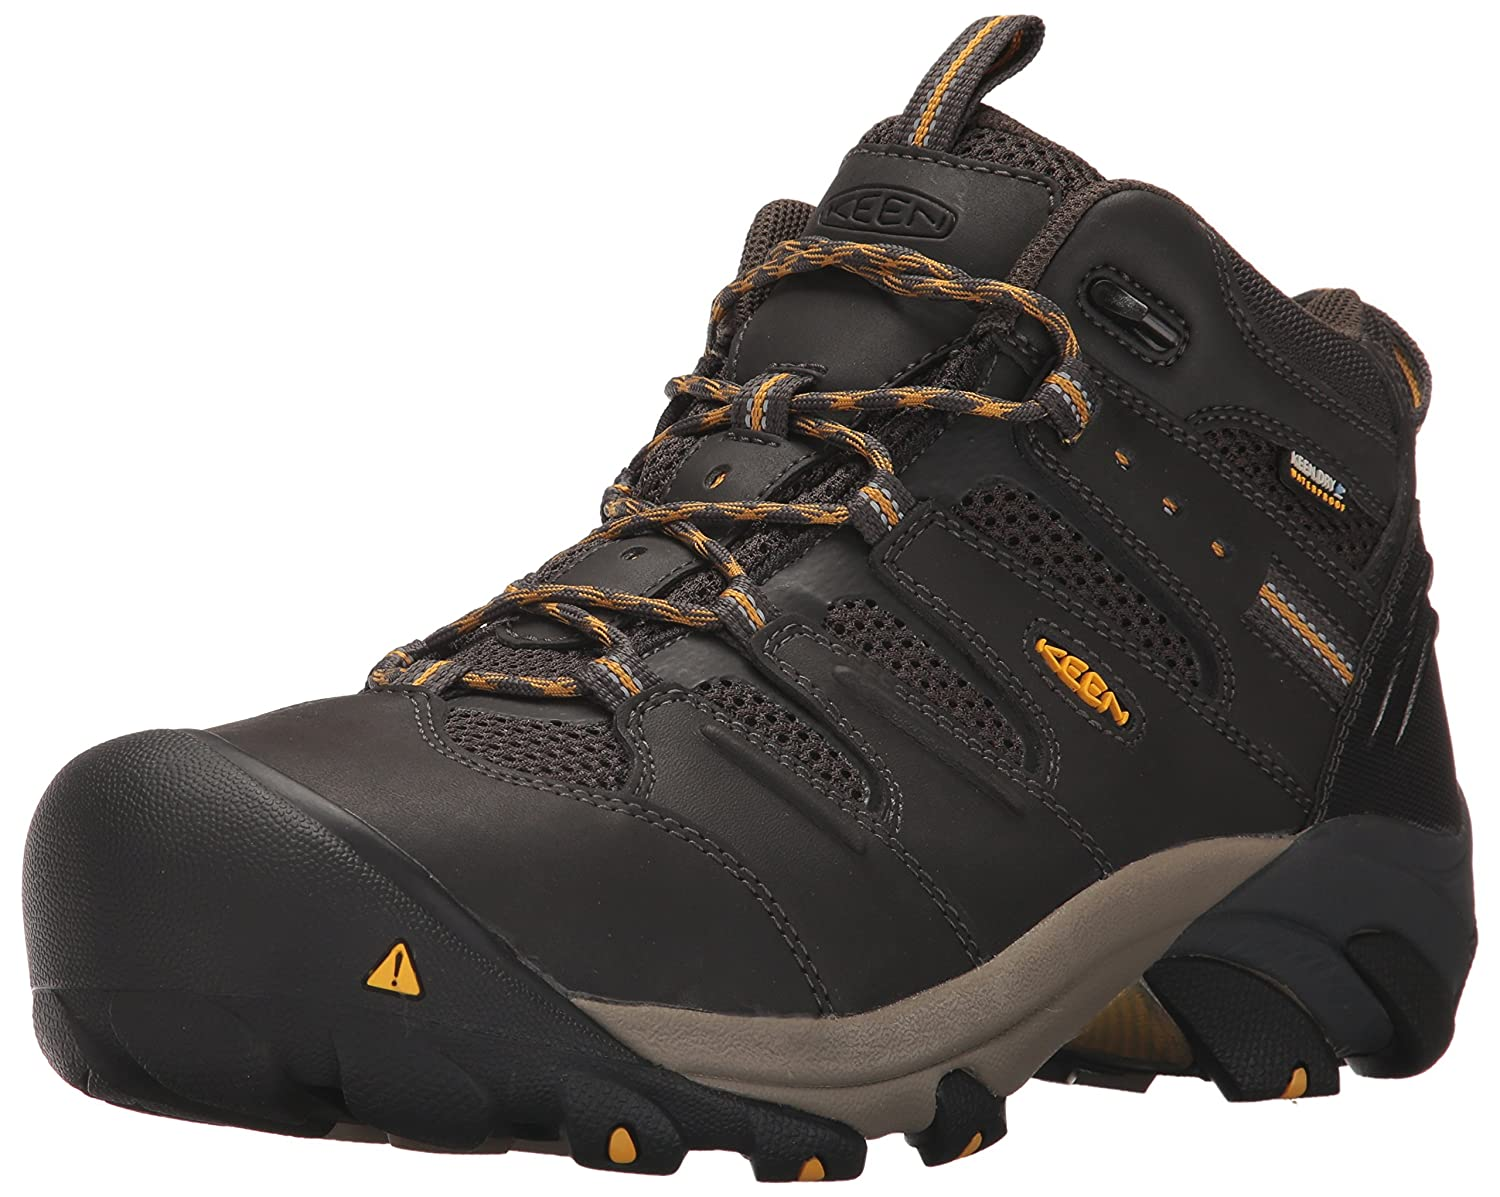 Keen Utility Men's Lansing Mid Waterproof Industrial and Construction Shoe Keen Utility - US Shoes LANSING MID WP-M